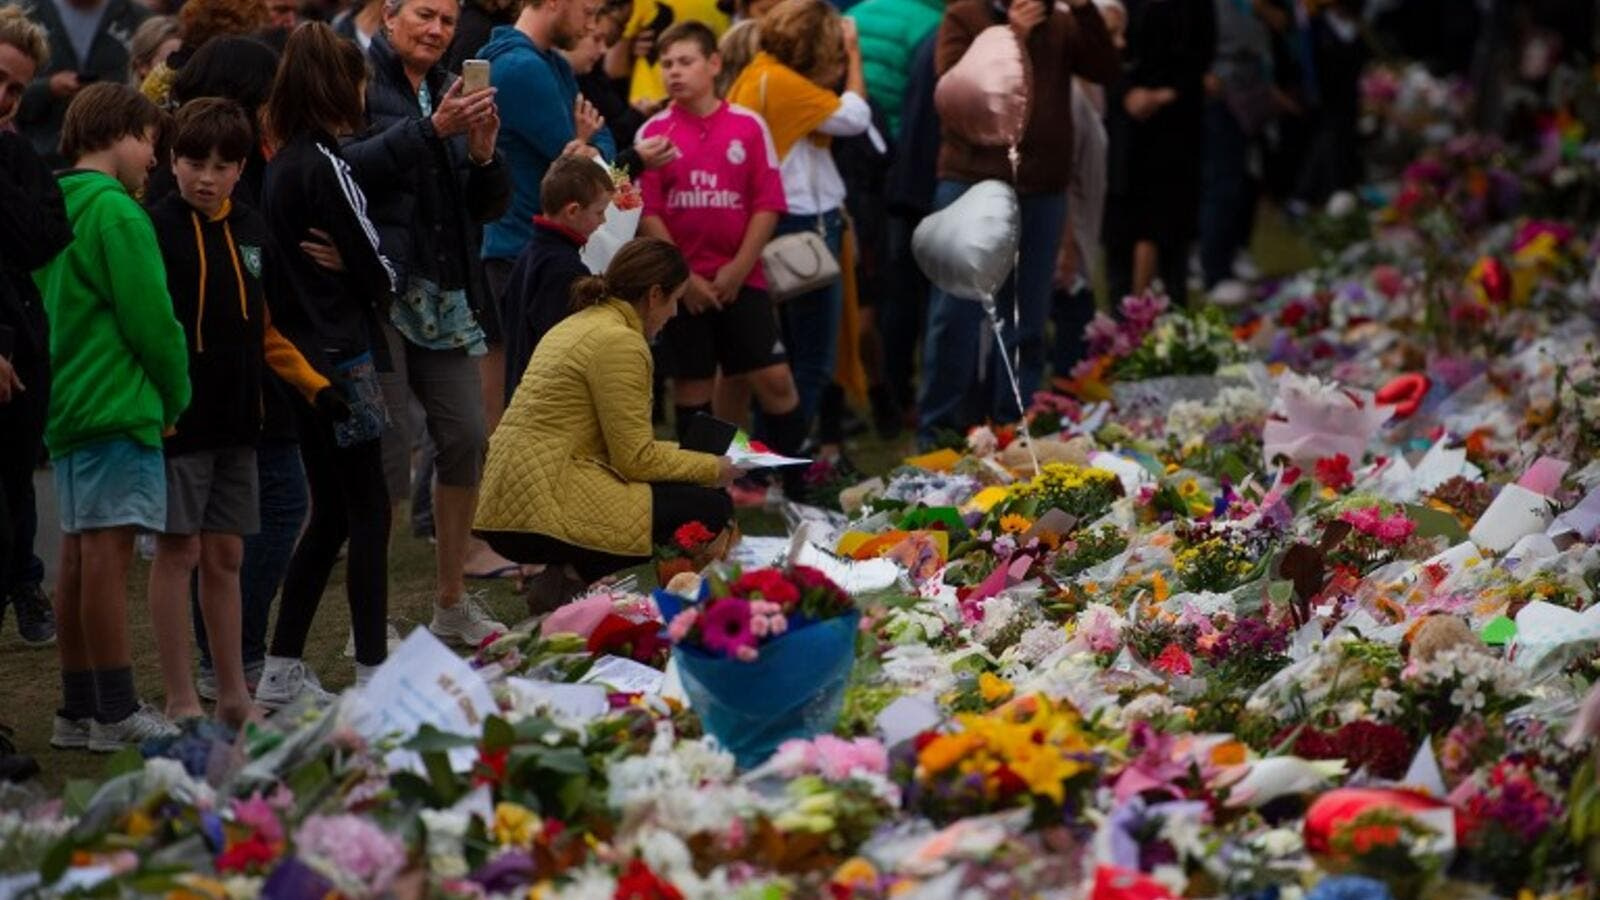 People pay their respects at a memorial site at the Botanical garden in Christchurch on March 18, 2019, three days after a shooting incident at two mosques. (AFP/ File)